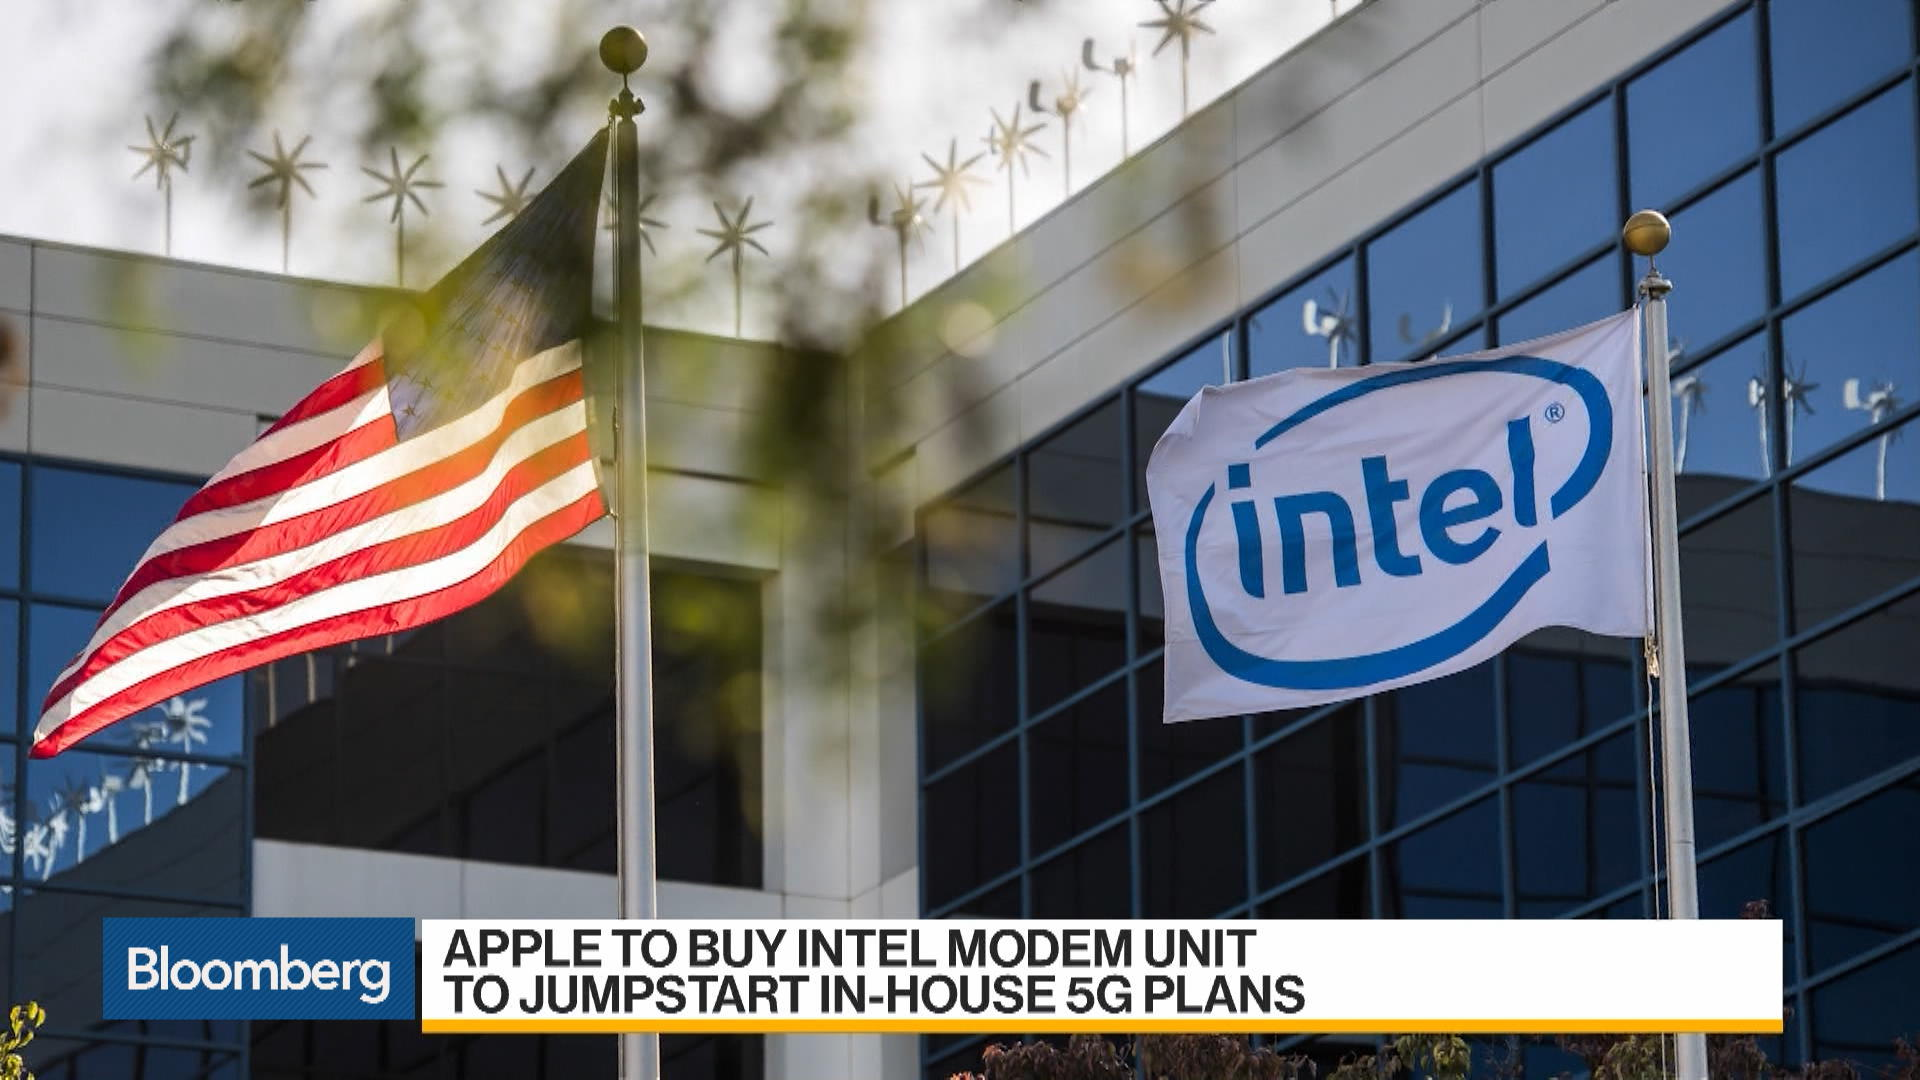 Apple (AAPL) to Buy Intel's (INTC) Modem Unit - Bloomberg